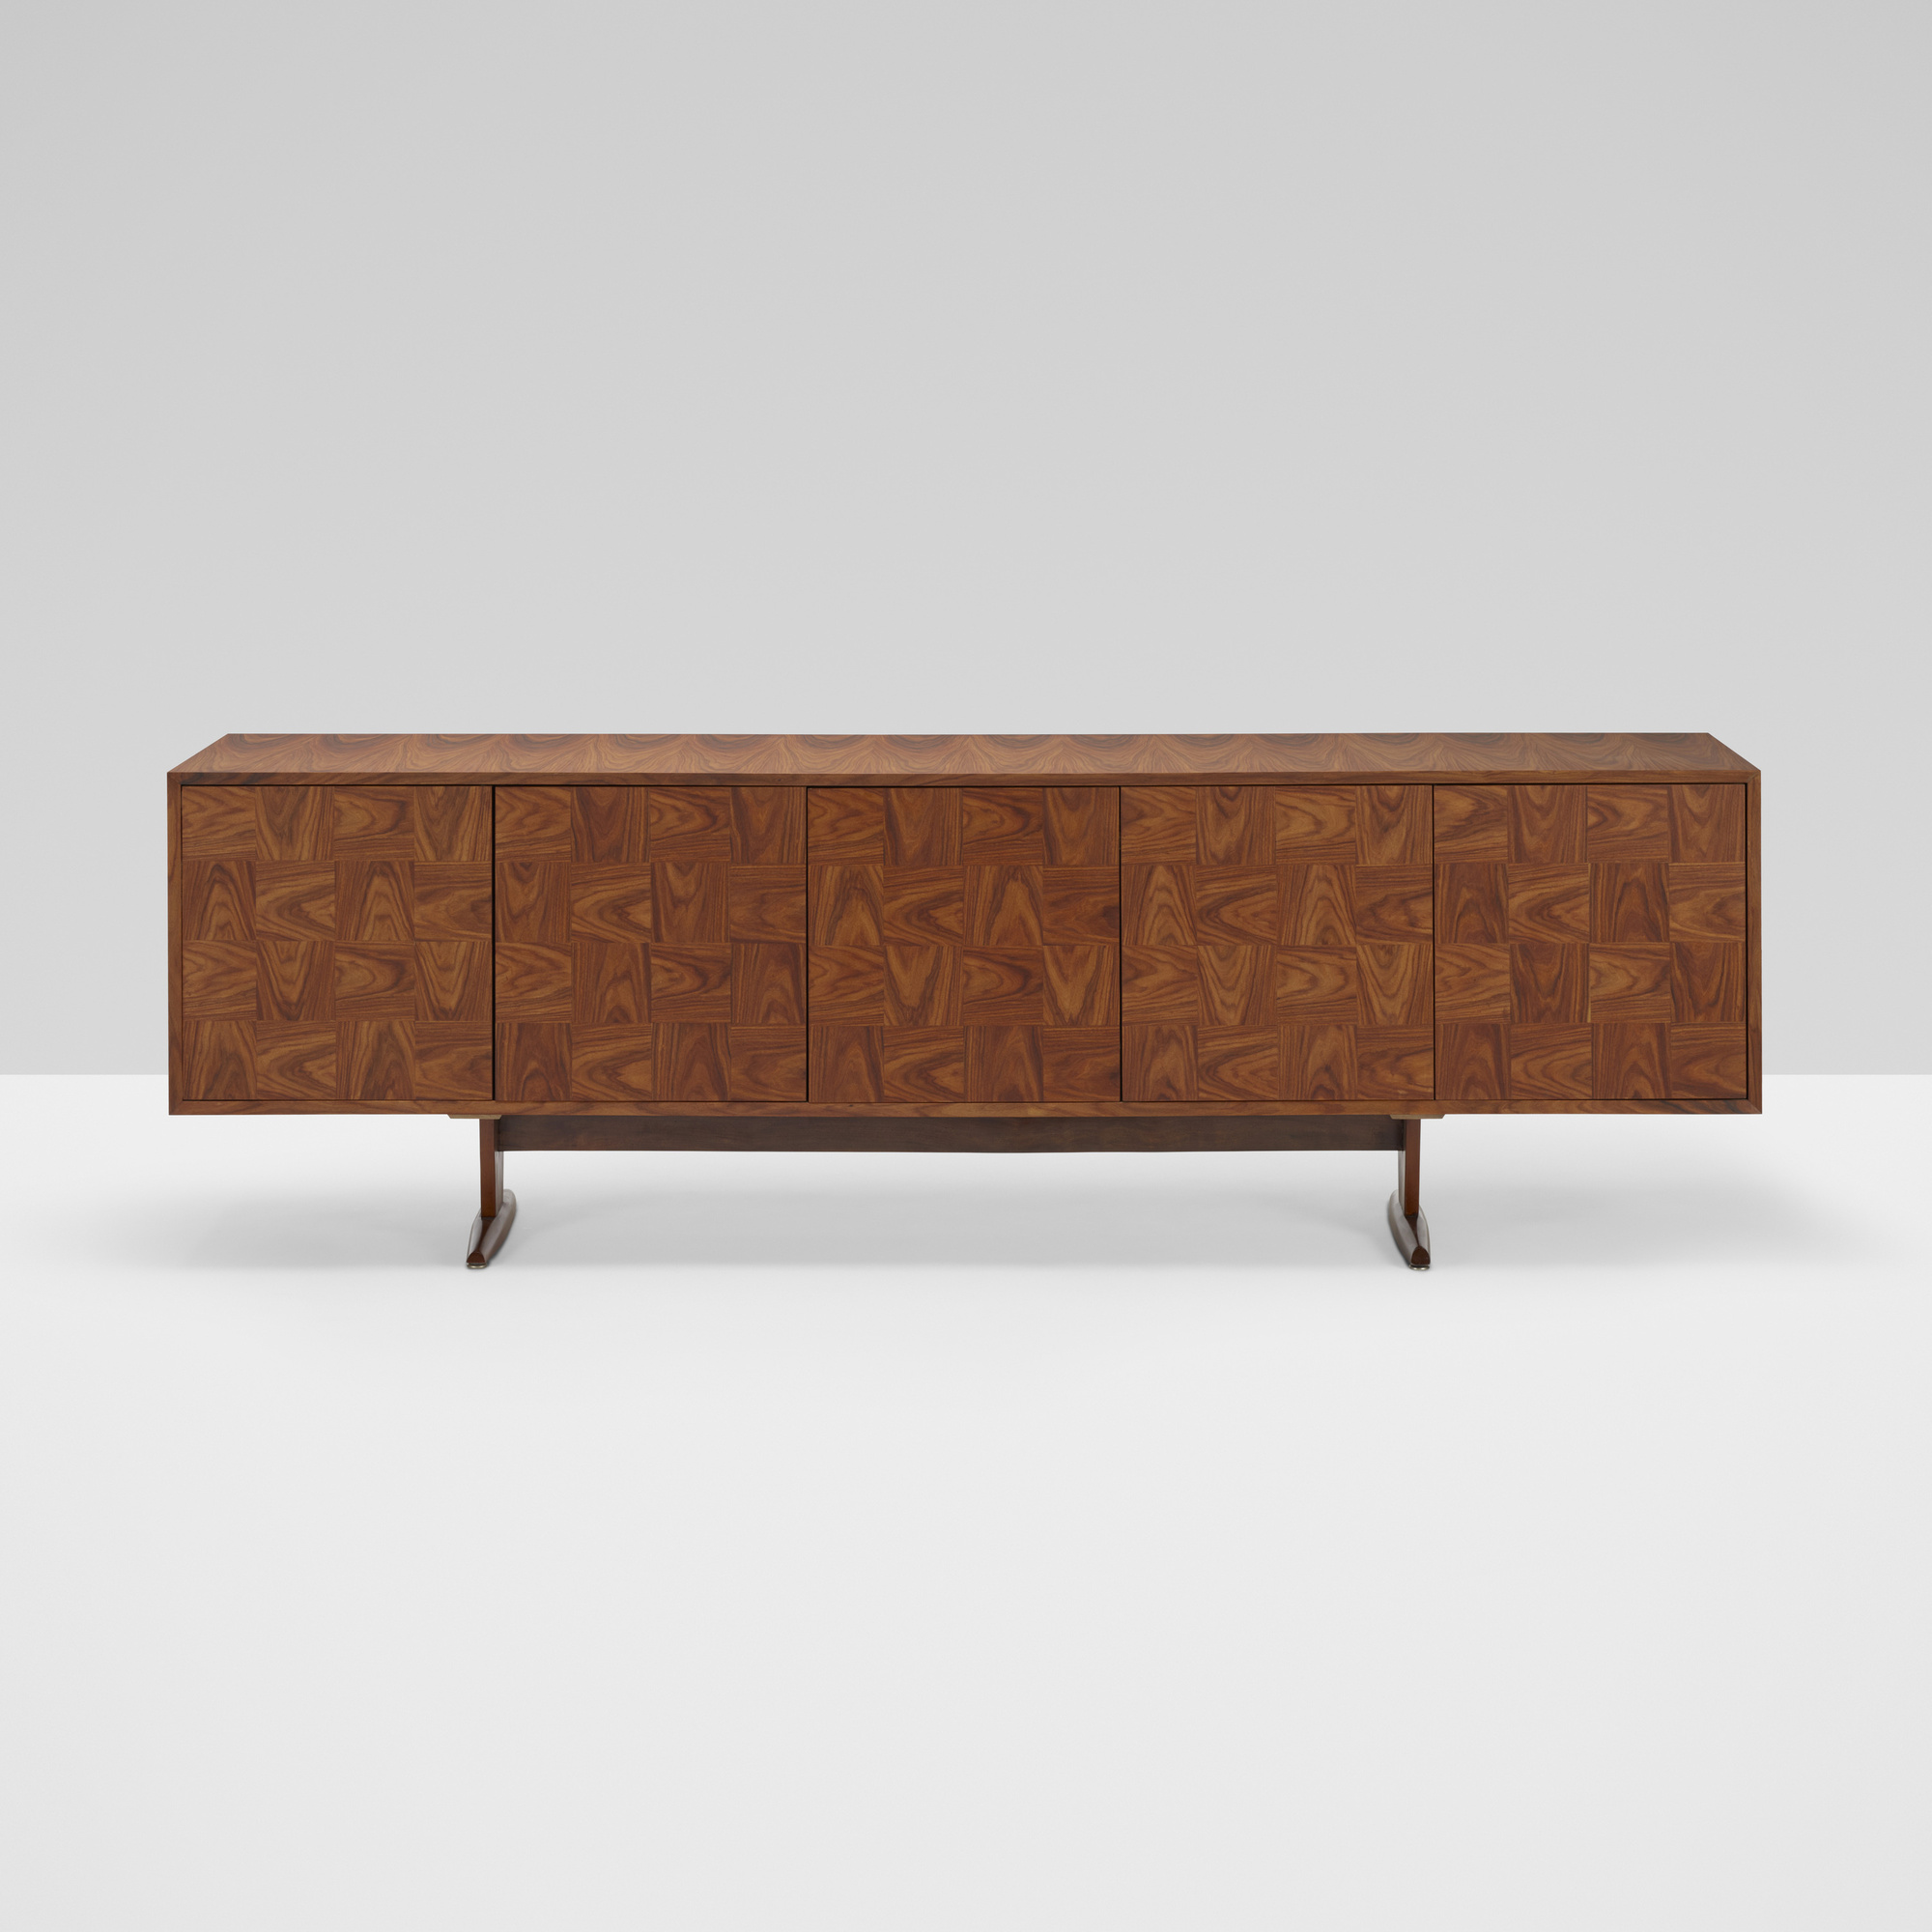 228: Giuseppe Scapinelli / cabinet (1 of 4)